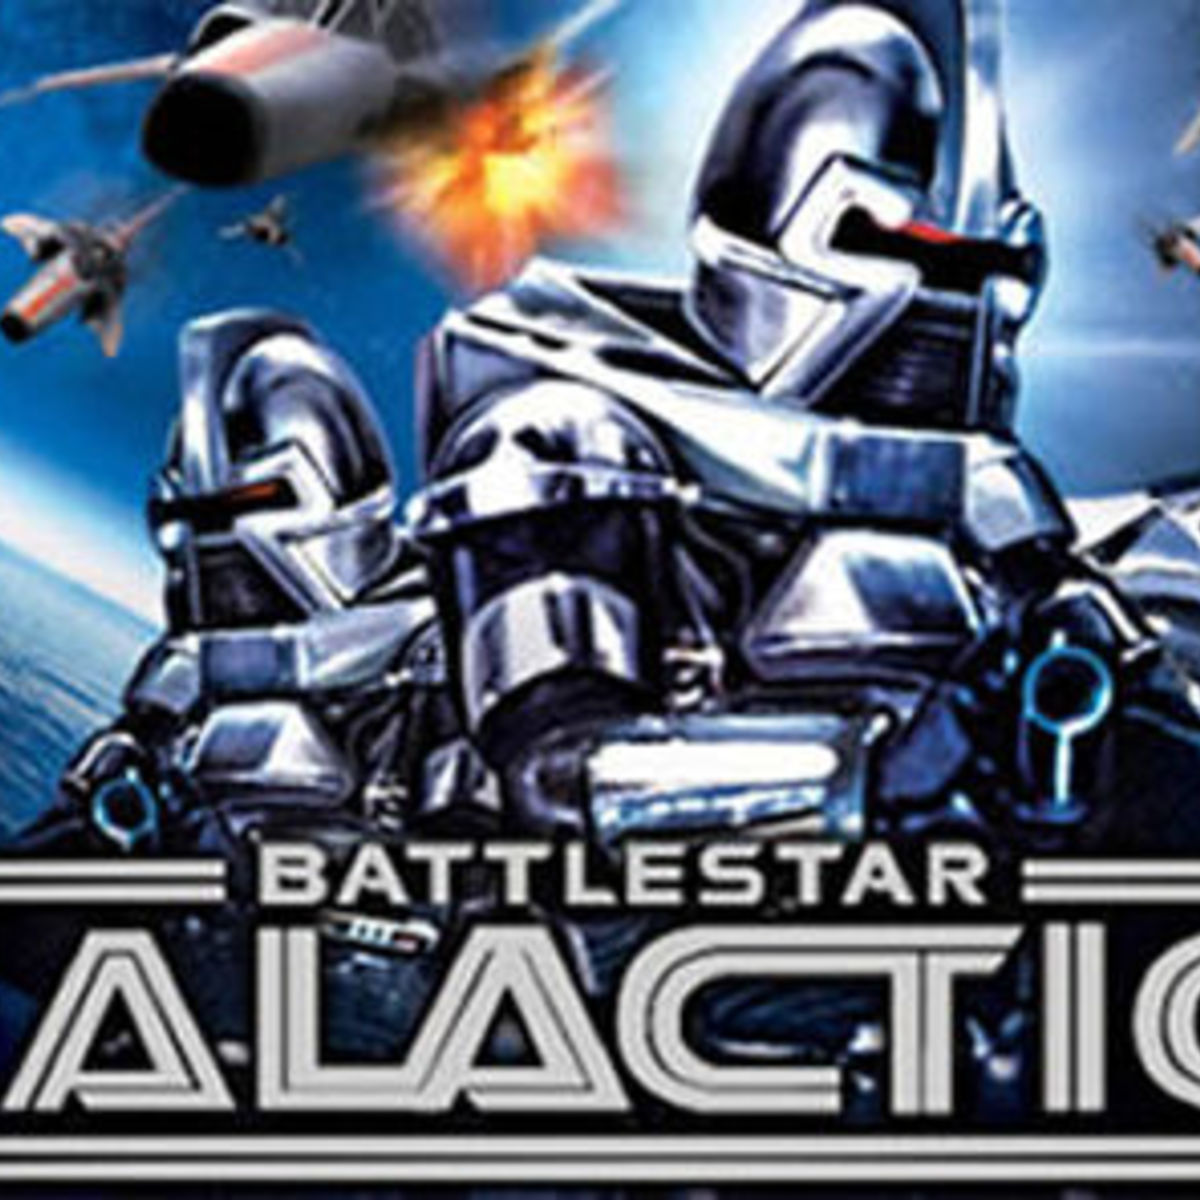 battlestar_galactica_movie_1.jpg